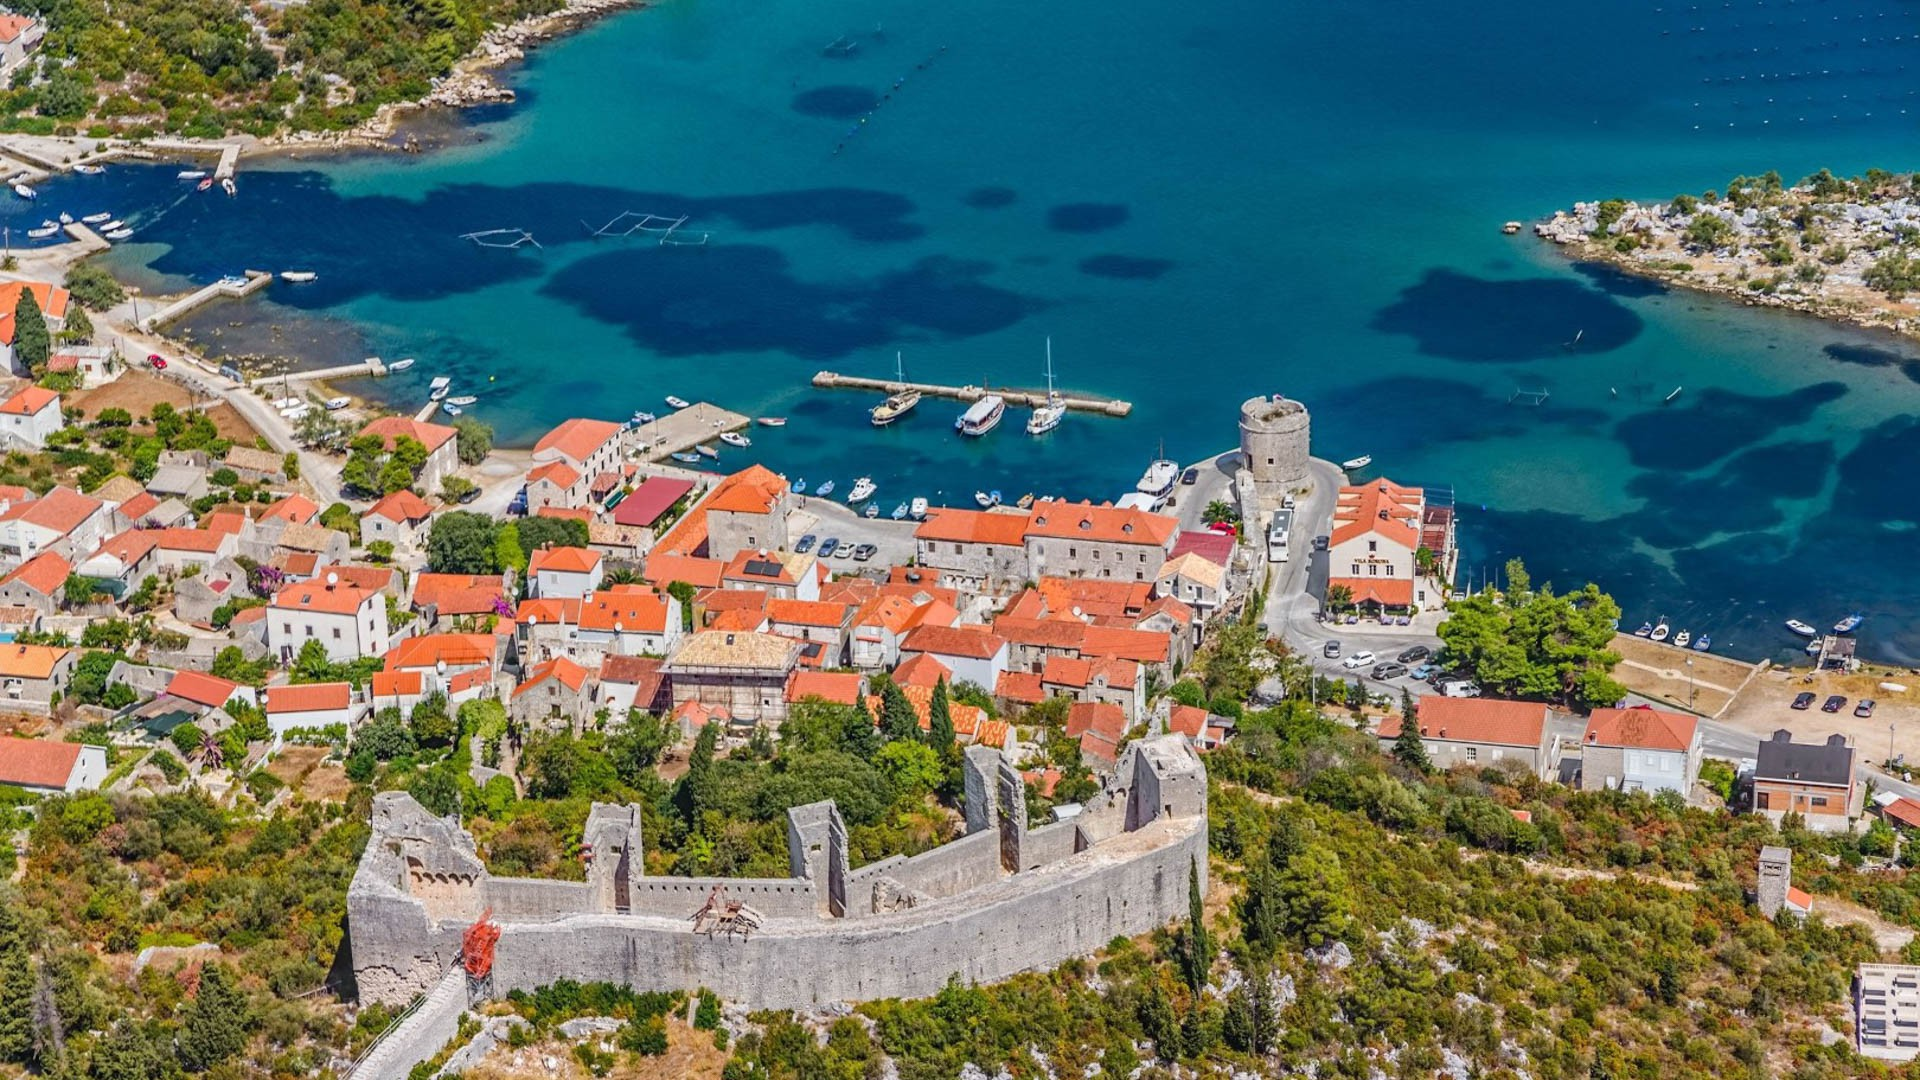 Ston - Adriatic Sea | Croatia Cruise Croatia Cruise